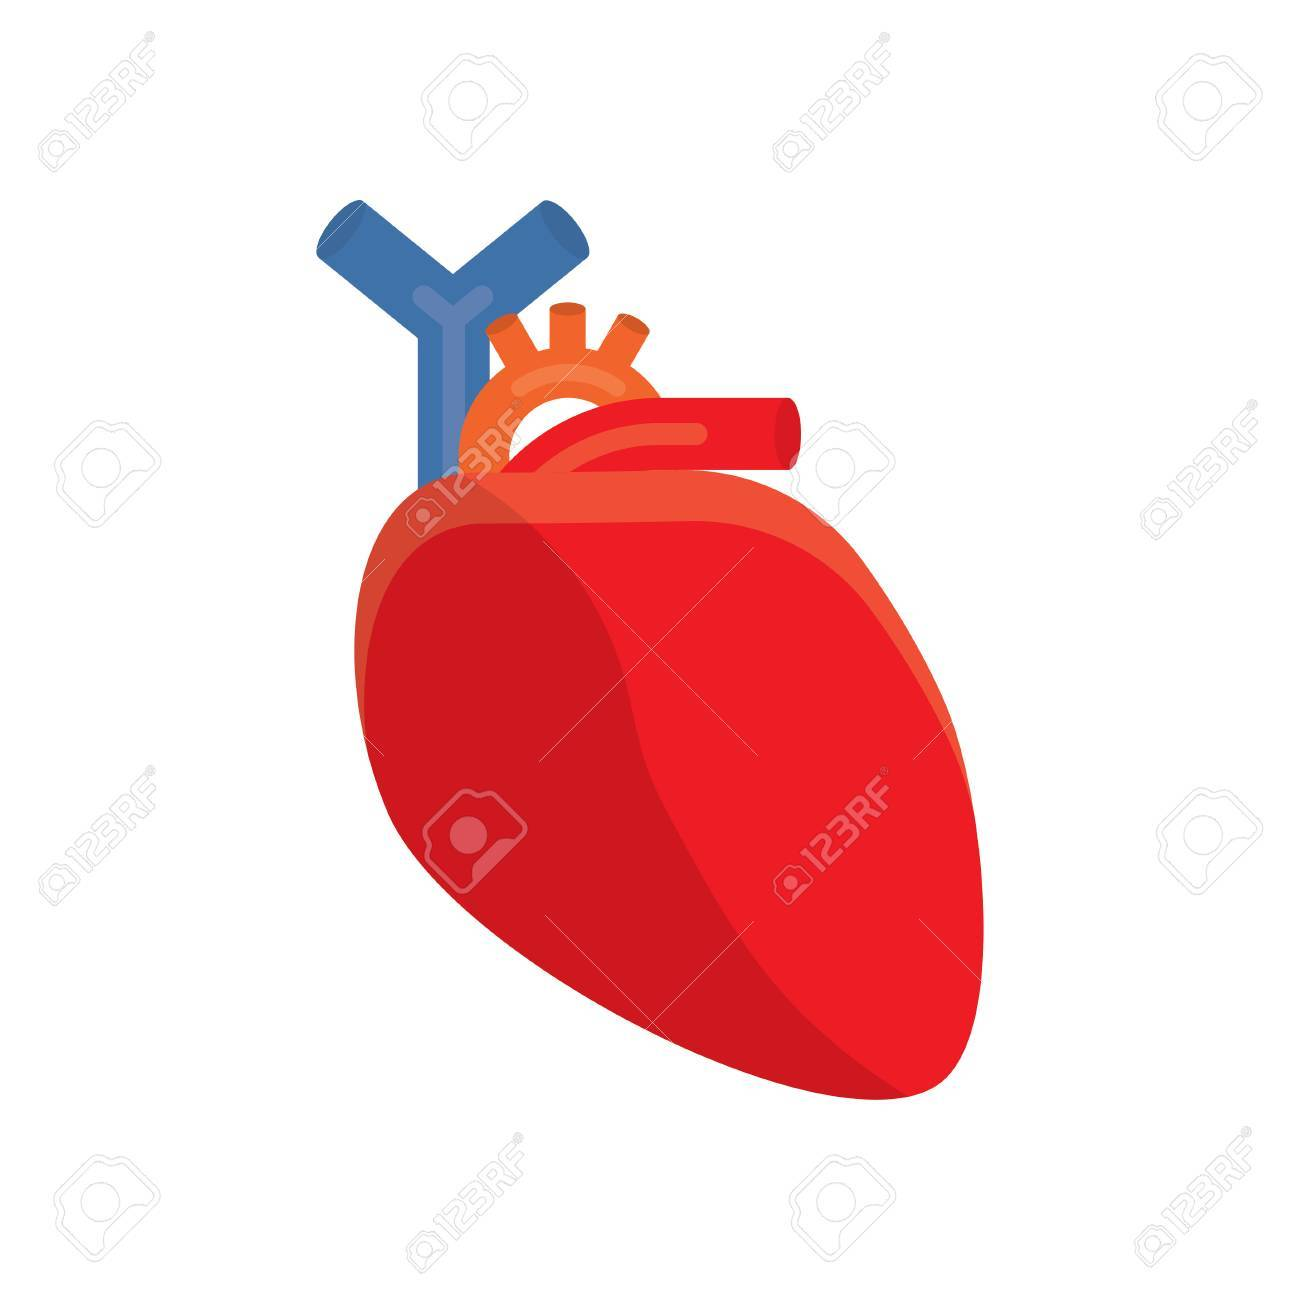 cardiology human heart vector illustration on a white background rh 123rf com human heart vector illustration human heart vector illustration